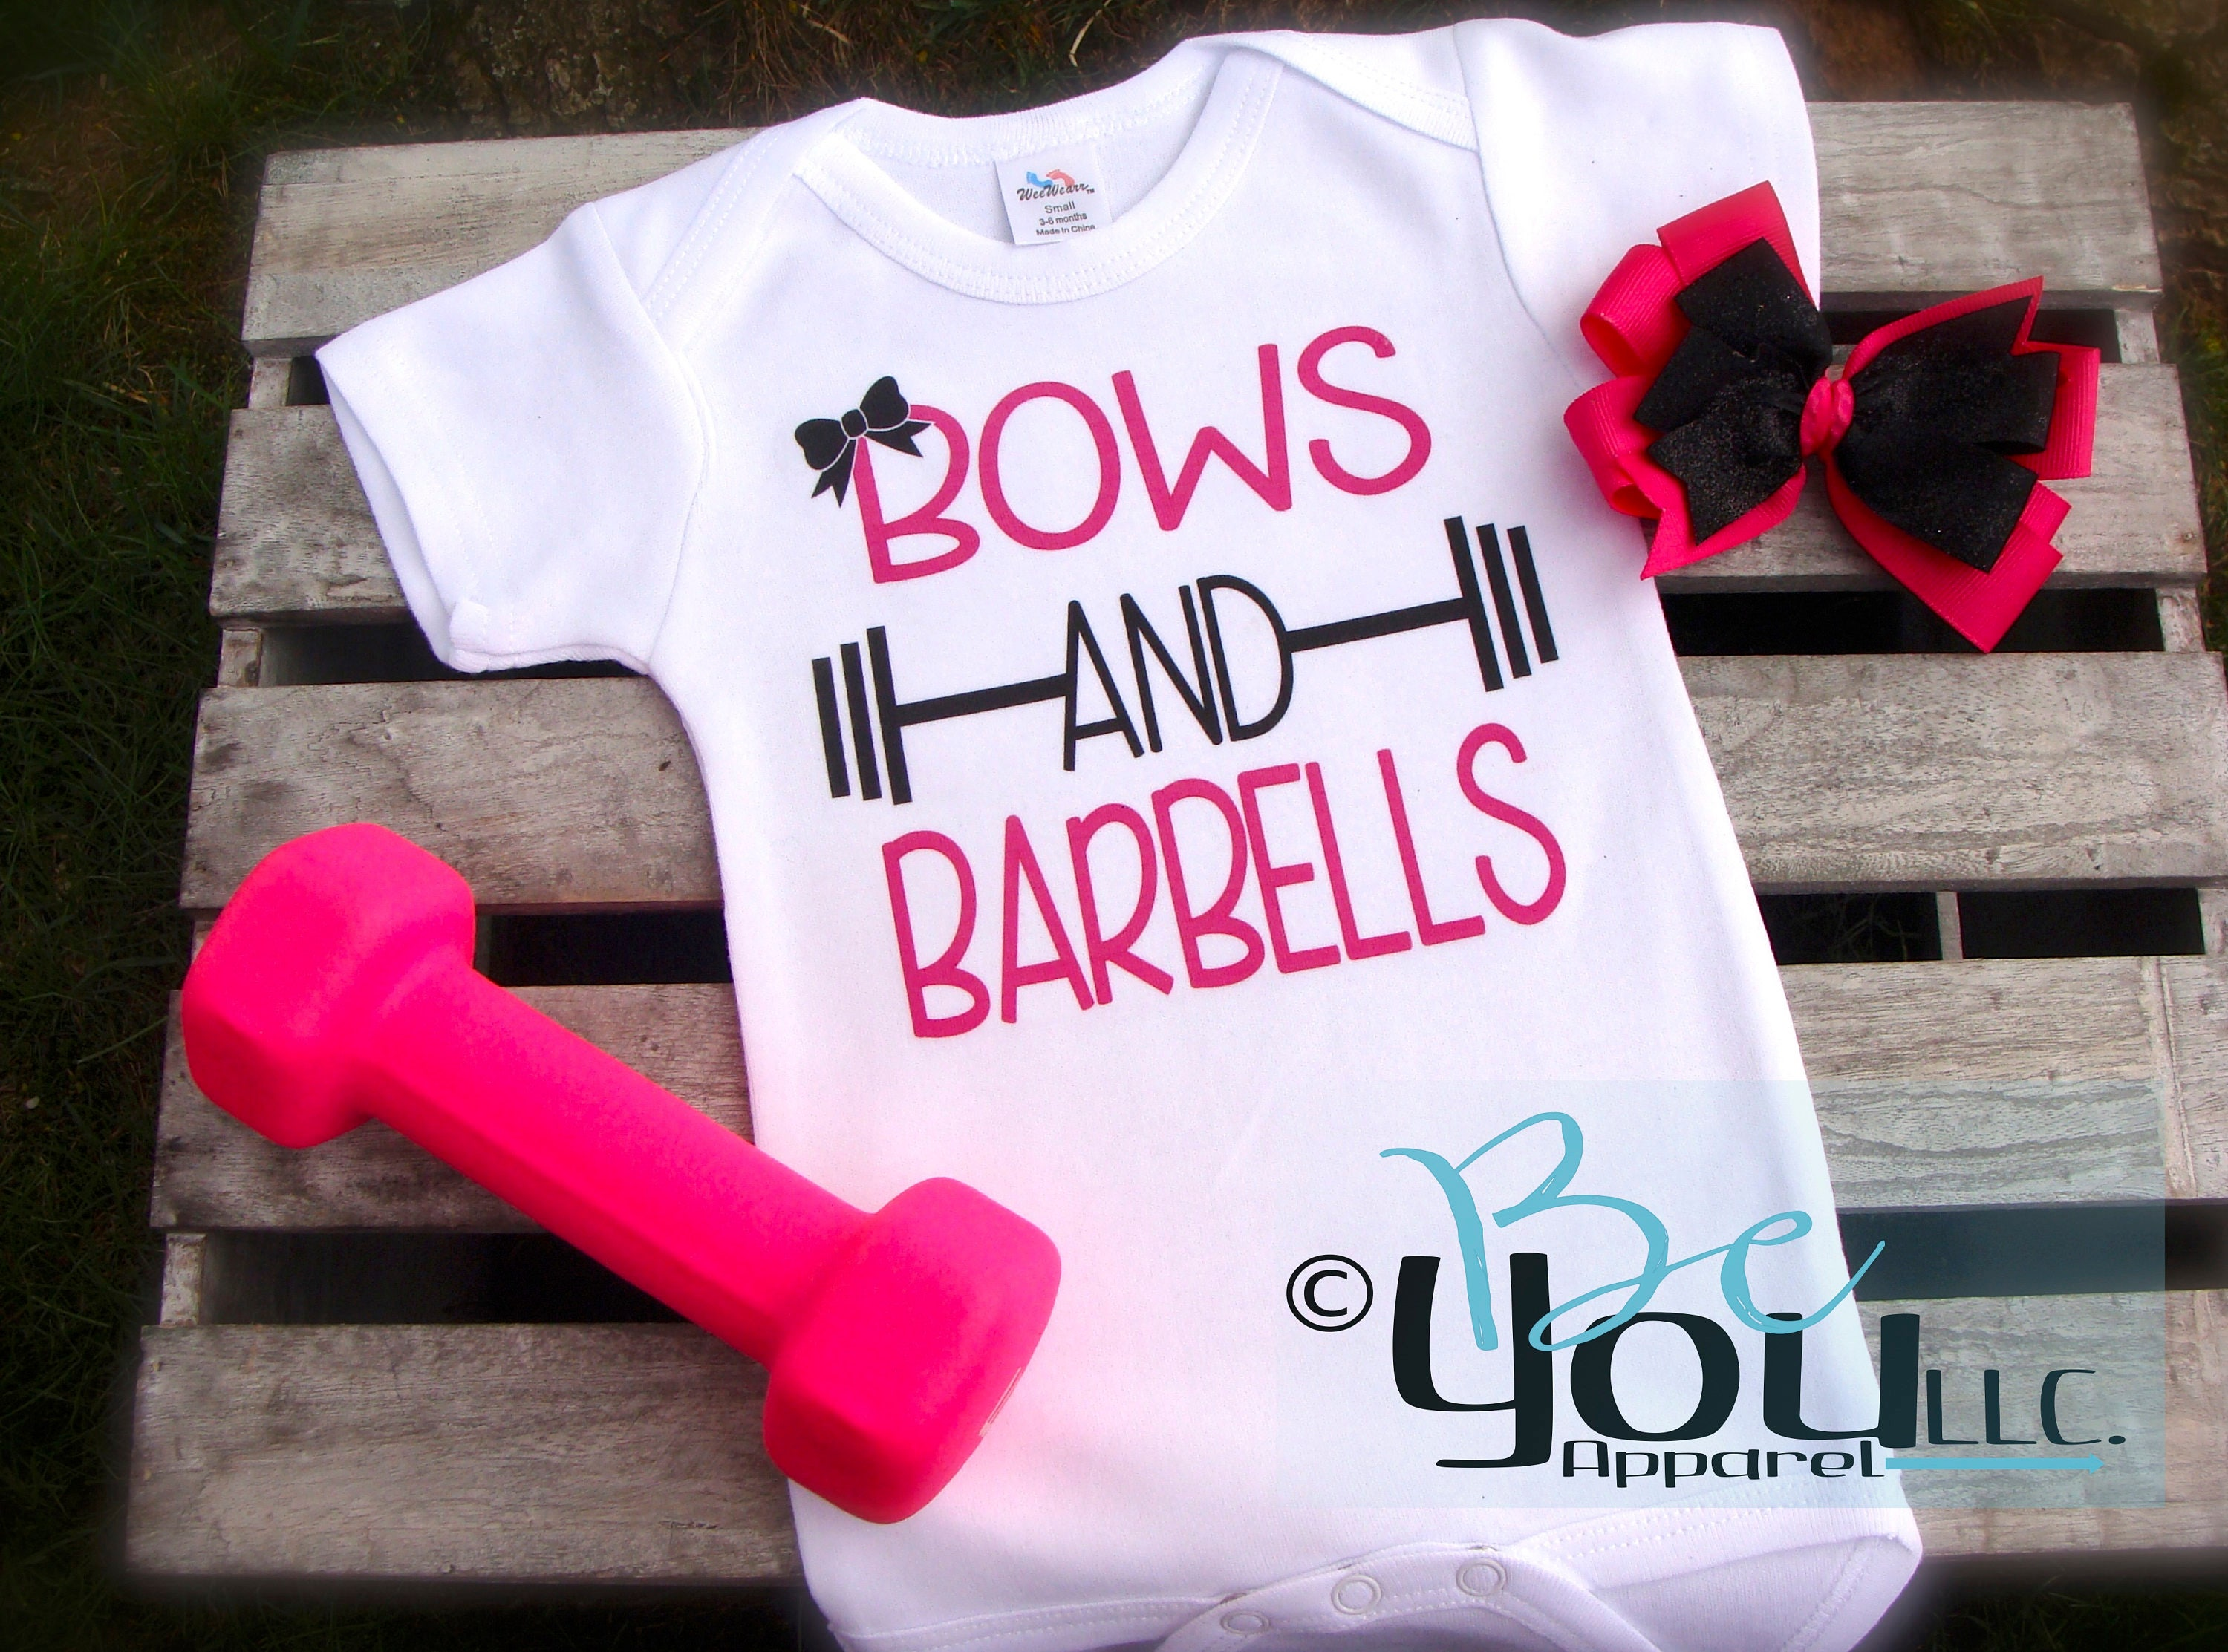 Bows and Barbells weight lifting curls workout shirt